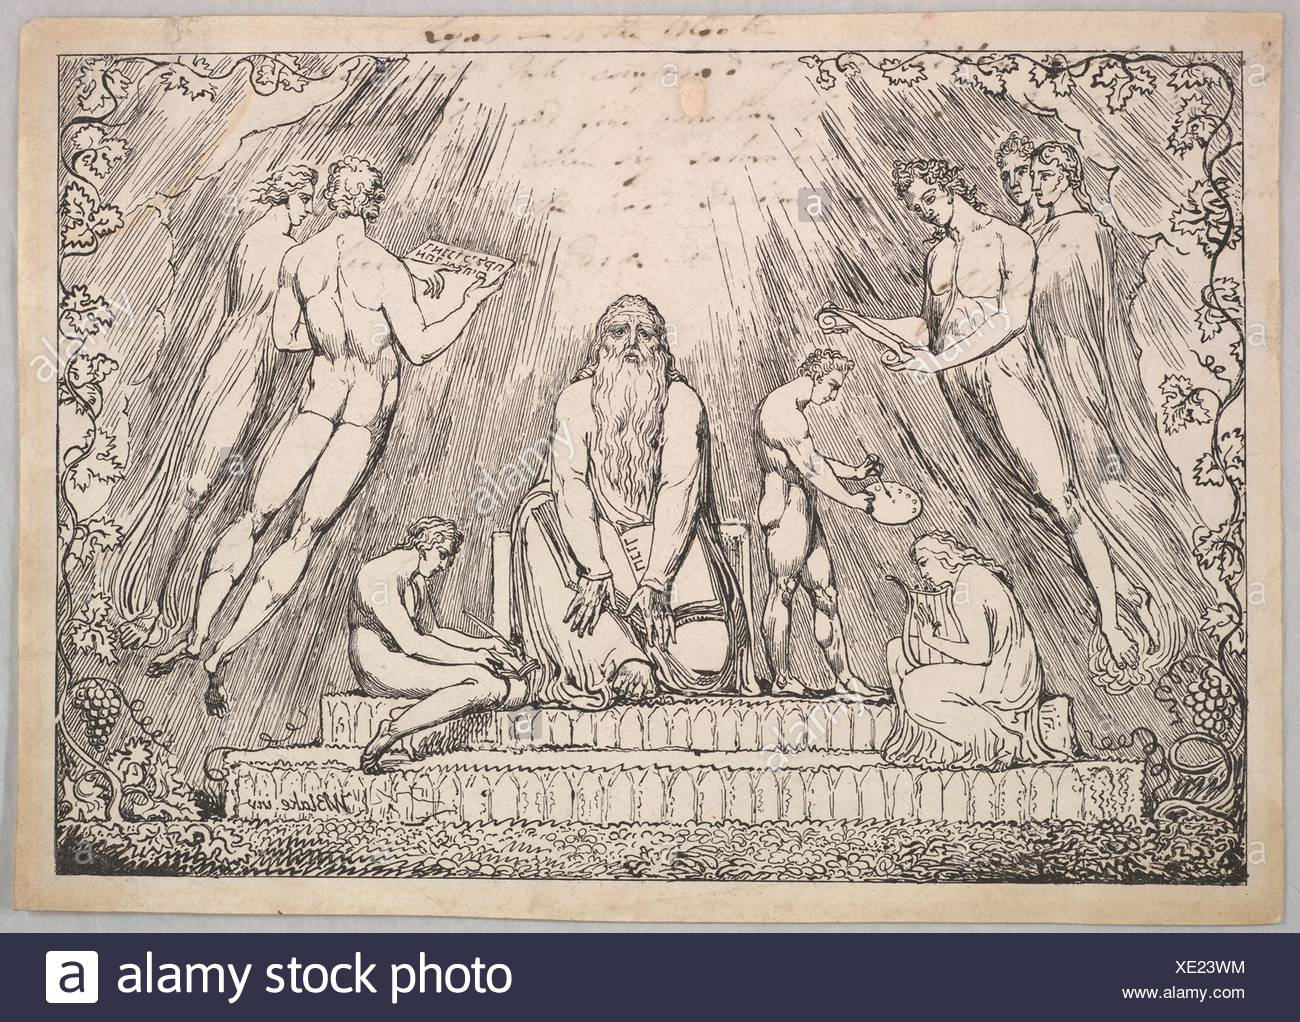 Artist: William Blake (British, London 1757-1827 London); Date: 1806-7;  Medium: Modified lithograph printed in relief from a stone; one state;